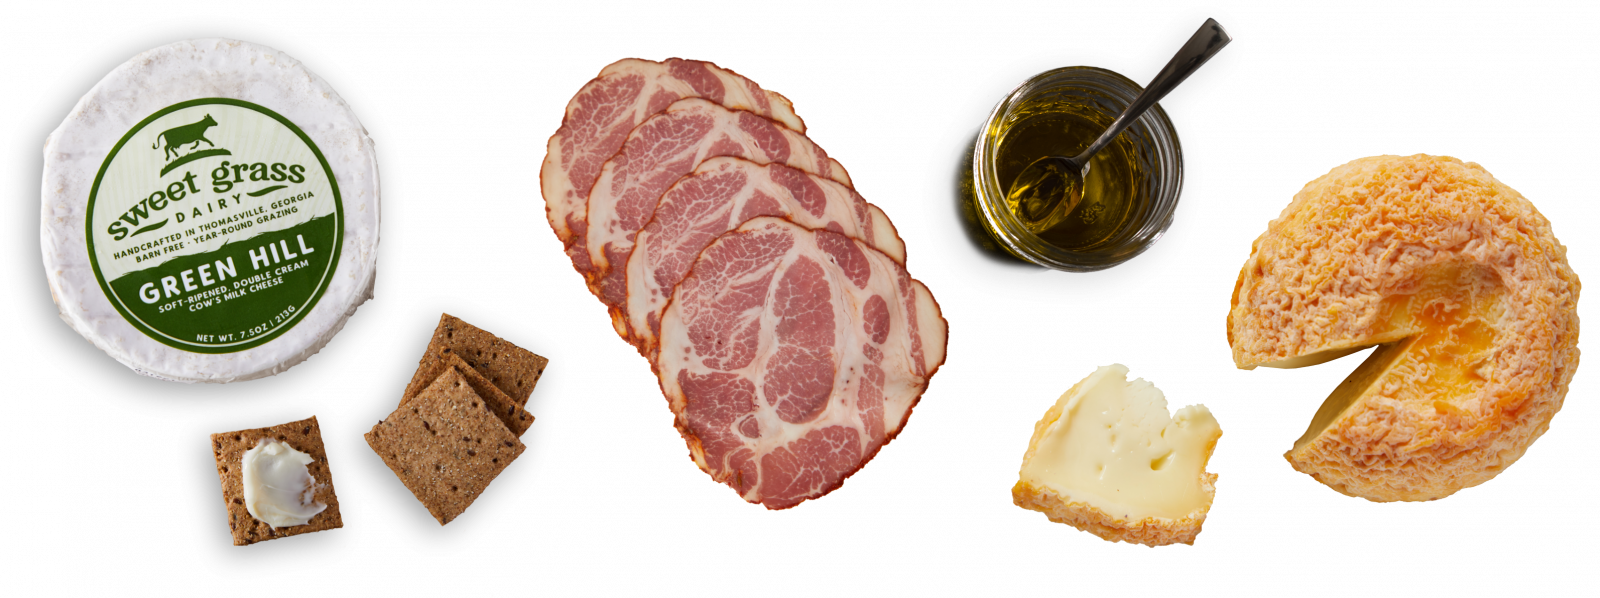 Cheese, Cured Meats, Pantry Items